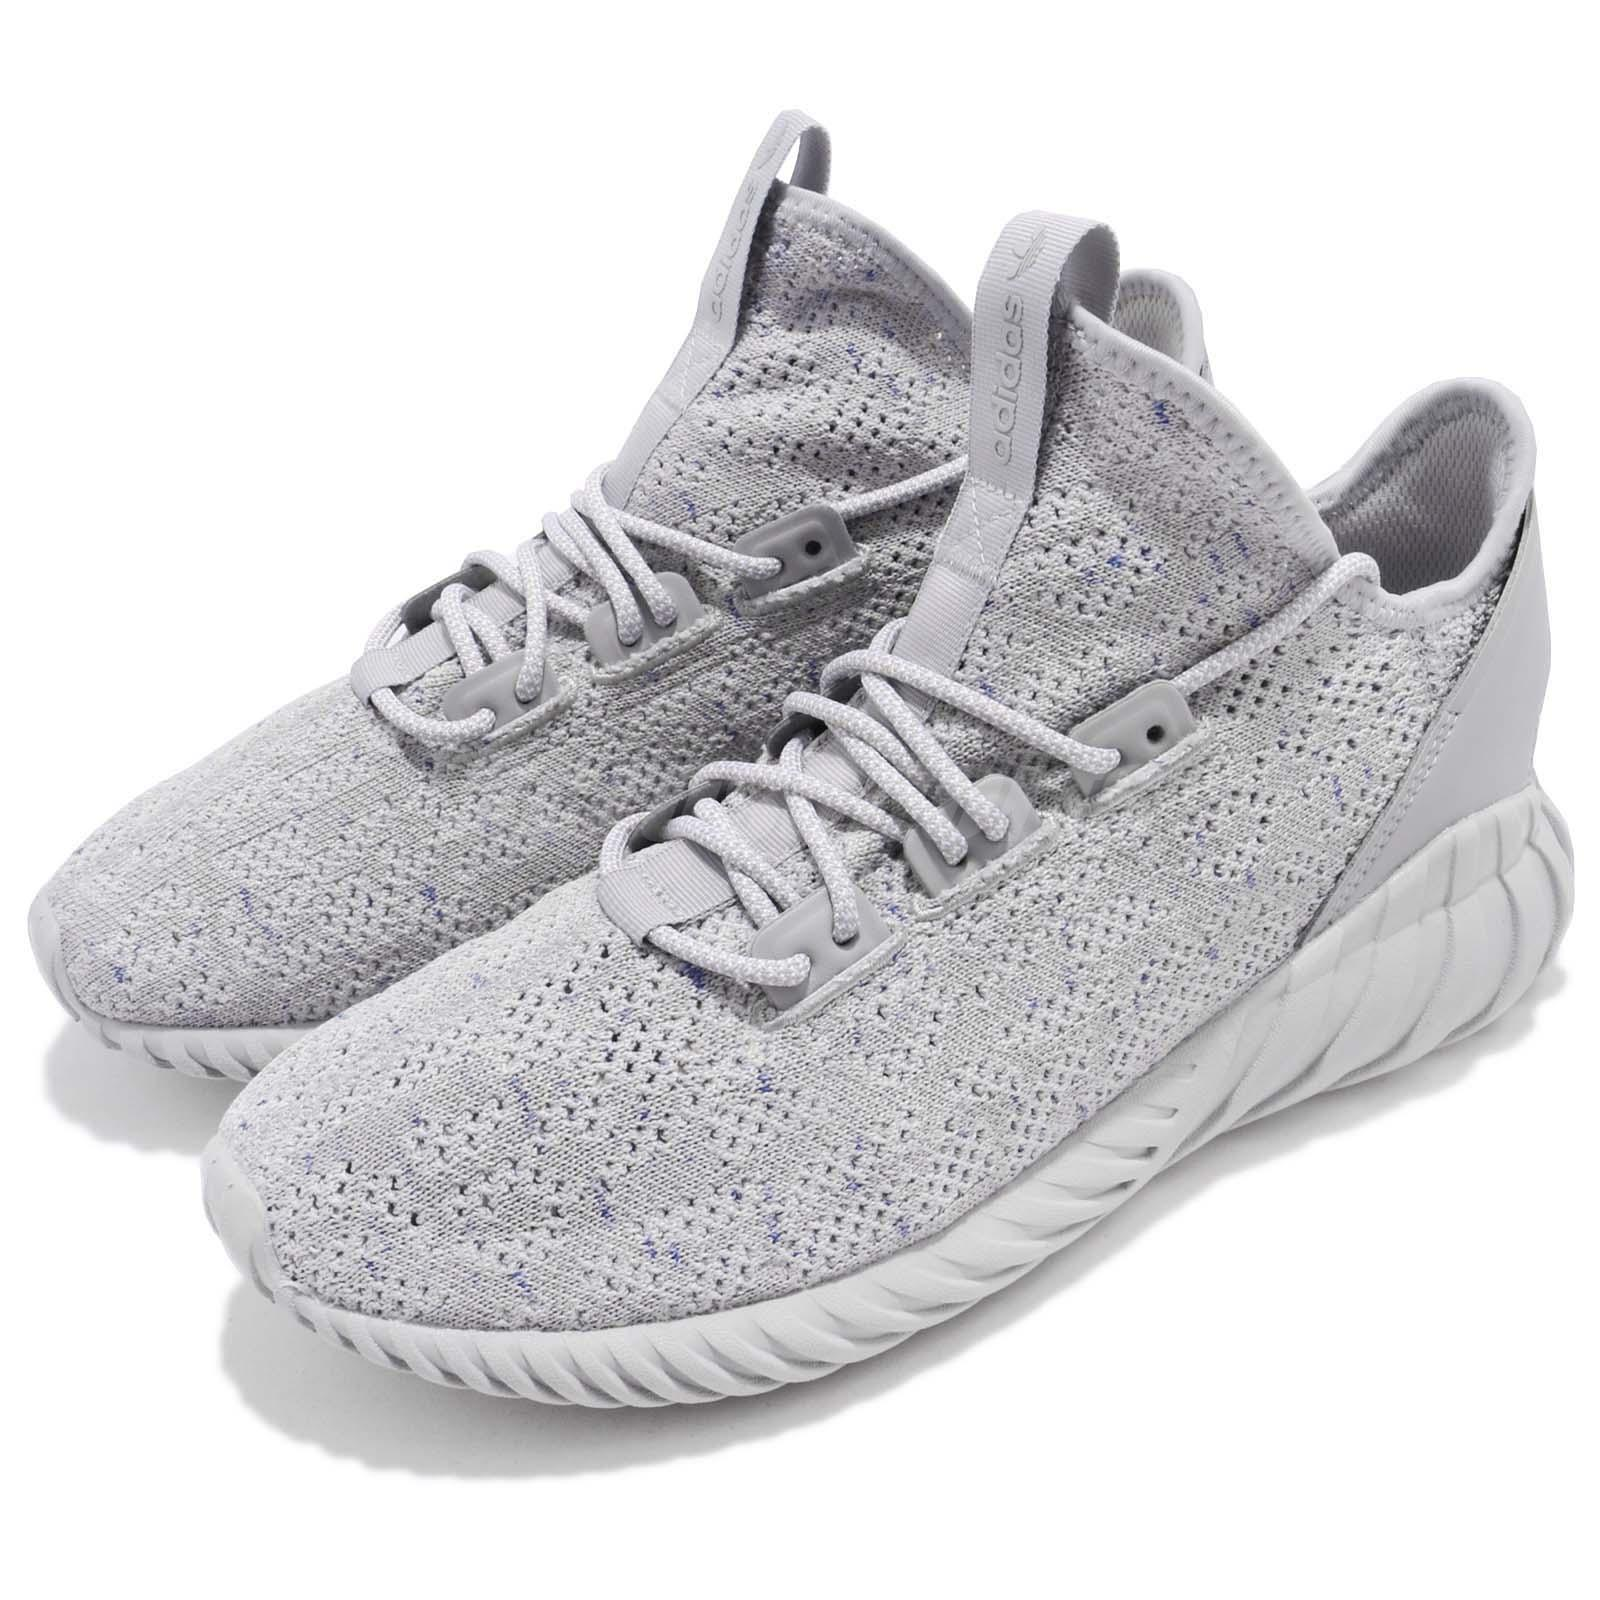 dfeffbcce7b2 Details about adidas Originals Tubular Doom Sock PK Primeknit Grey Men  Running Shoes CG5512